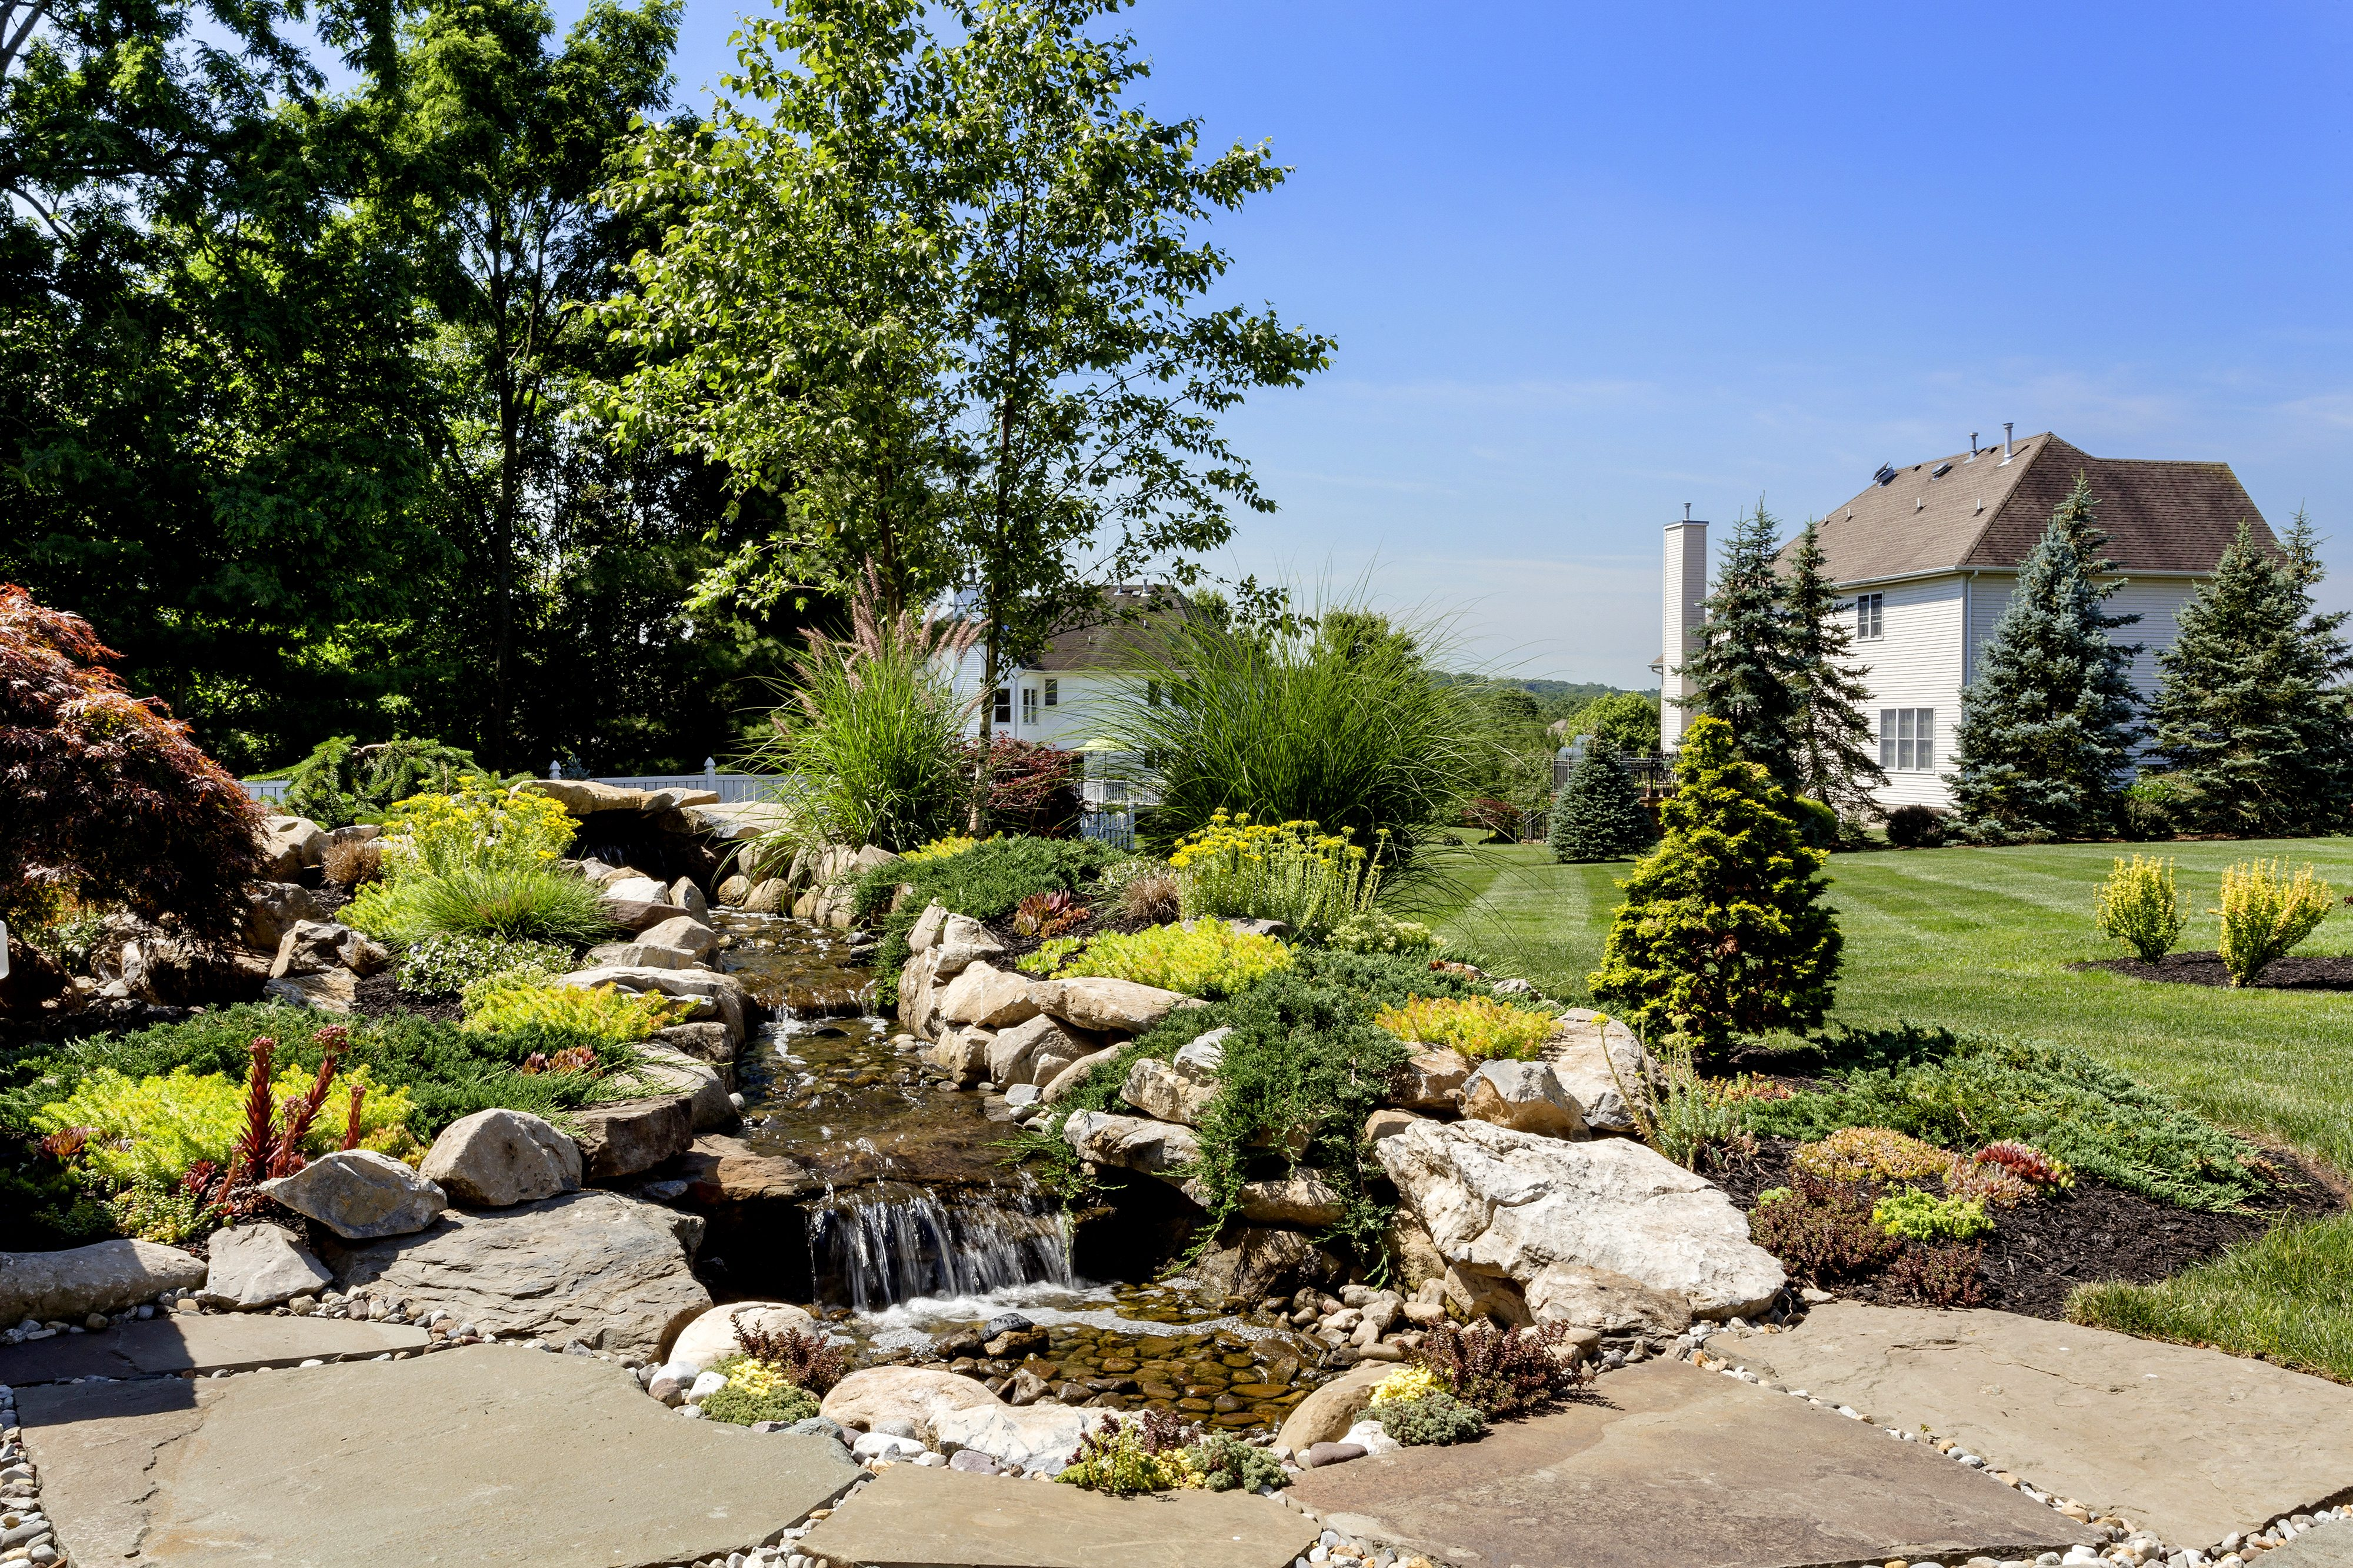 How Much Does a Pondless Waterfall Cost in Somerset County, NJ?